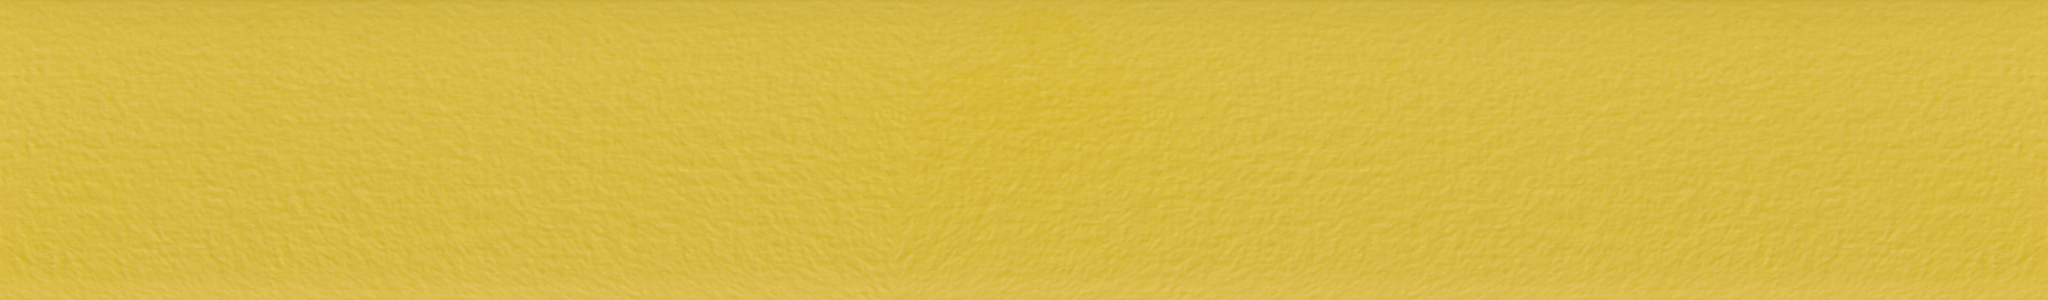 HU 110667 ABS Edge Yellow Soft Pearl 107